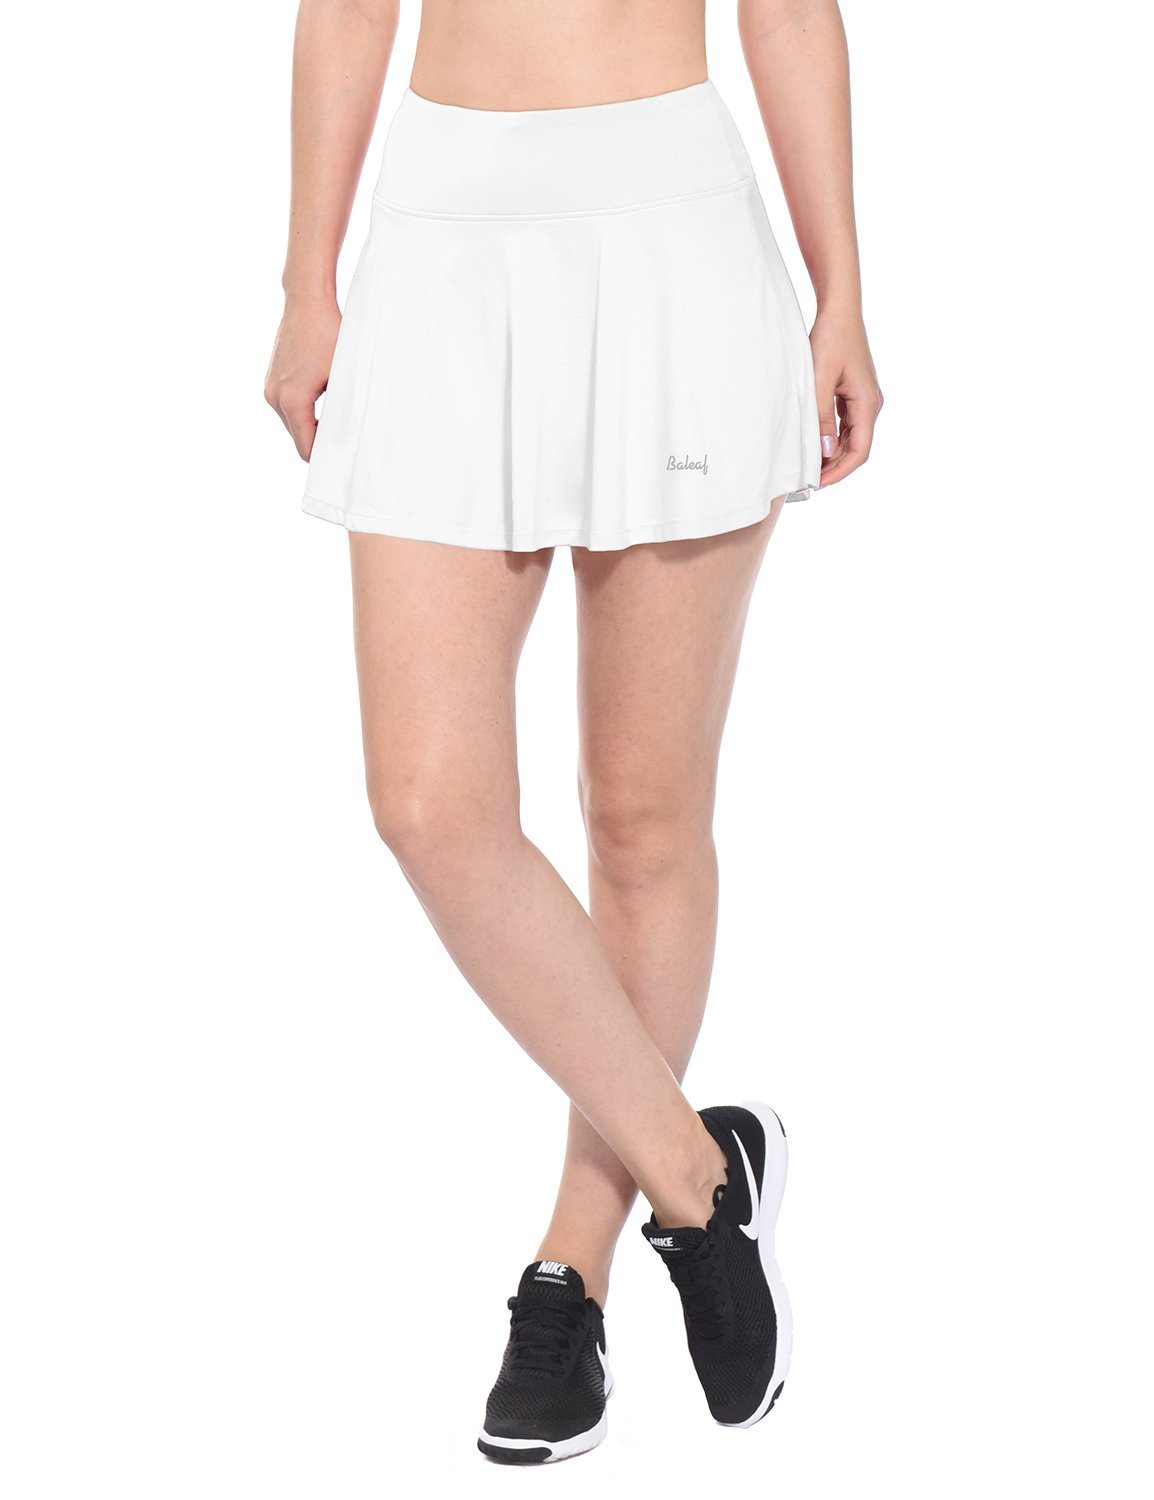 Baleaf Women's Athletic Pleated Tennis Golf Skirt with Pockets White Size M